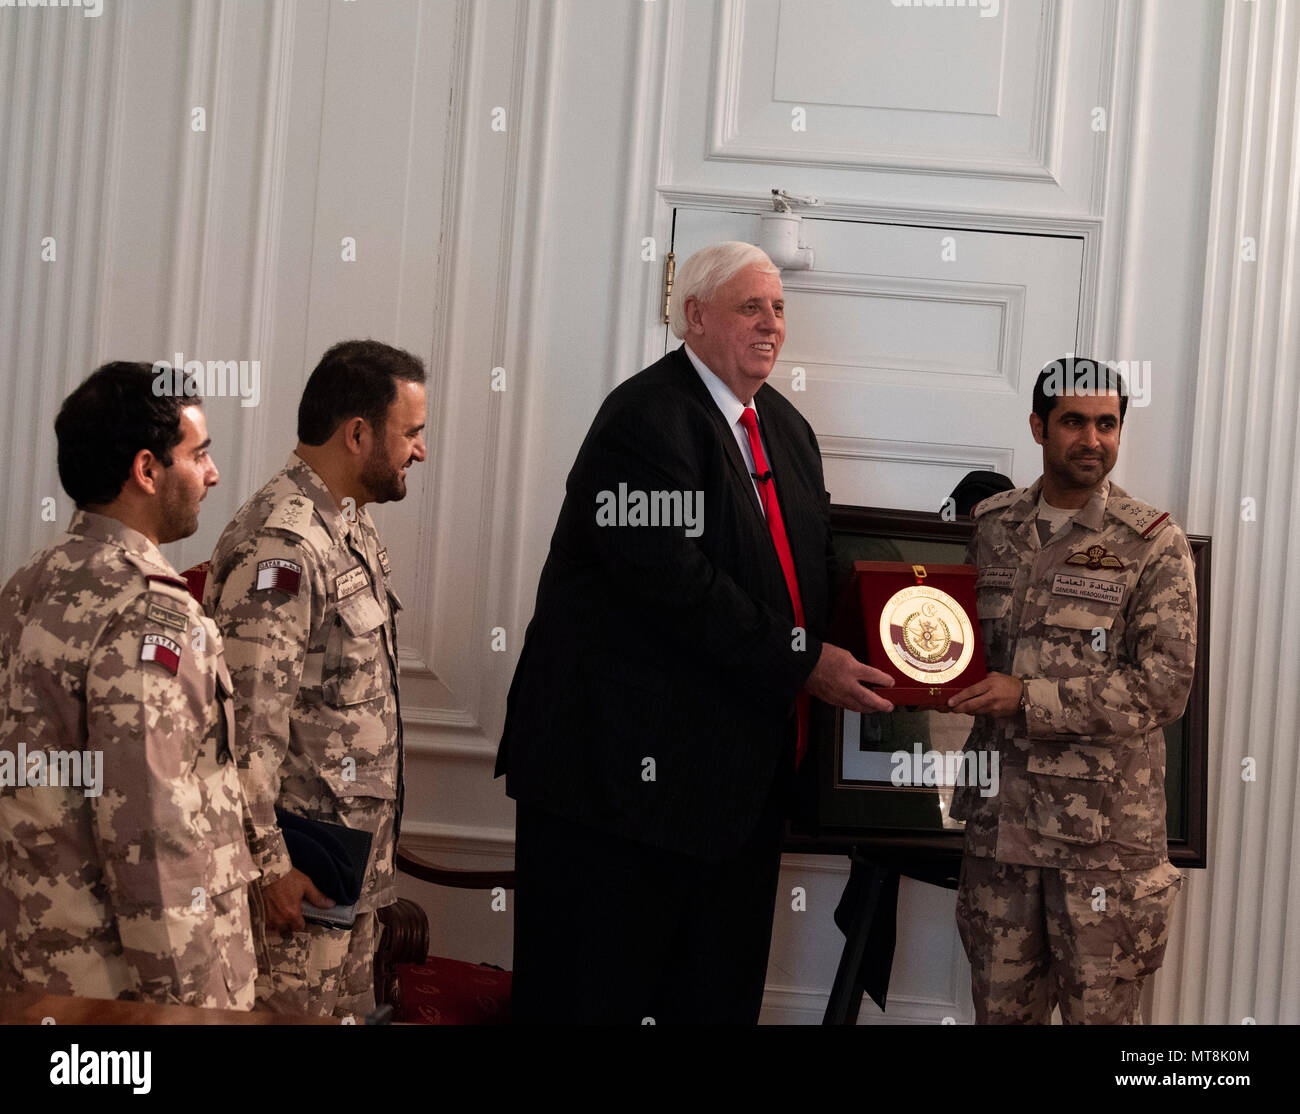 West Virginia Governor Jim Justice accepts a coin from the Qatari